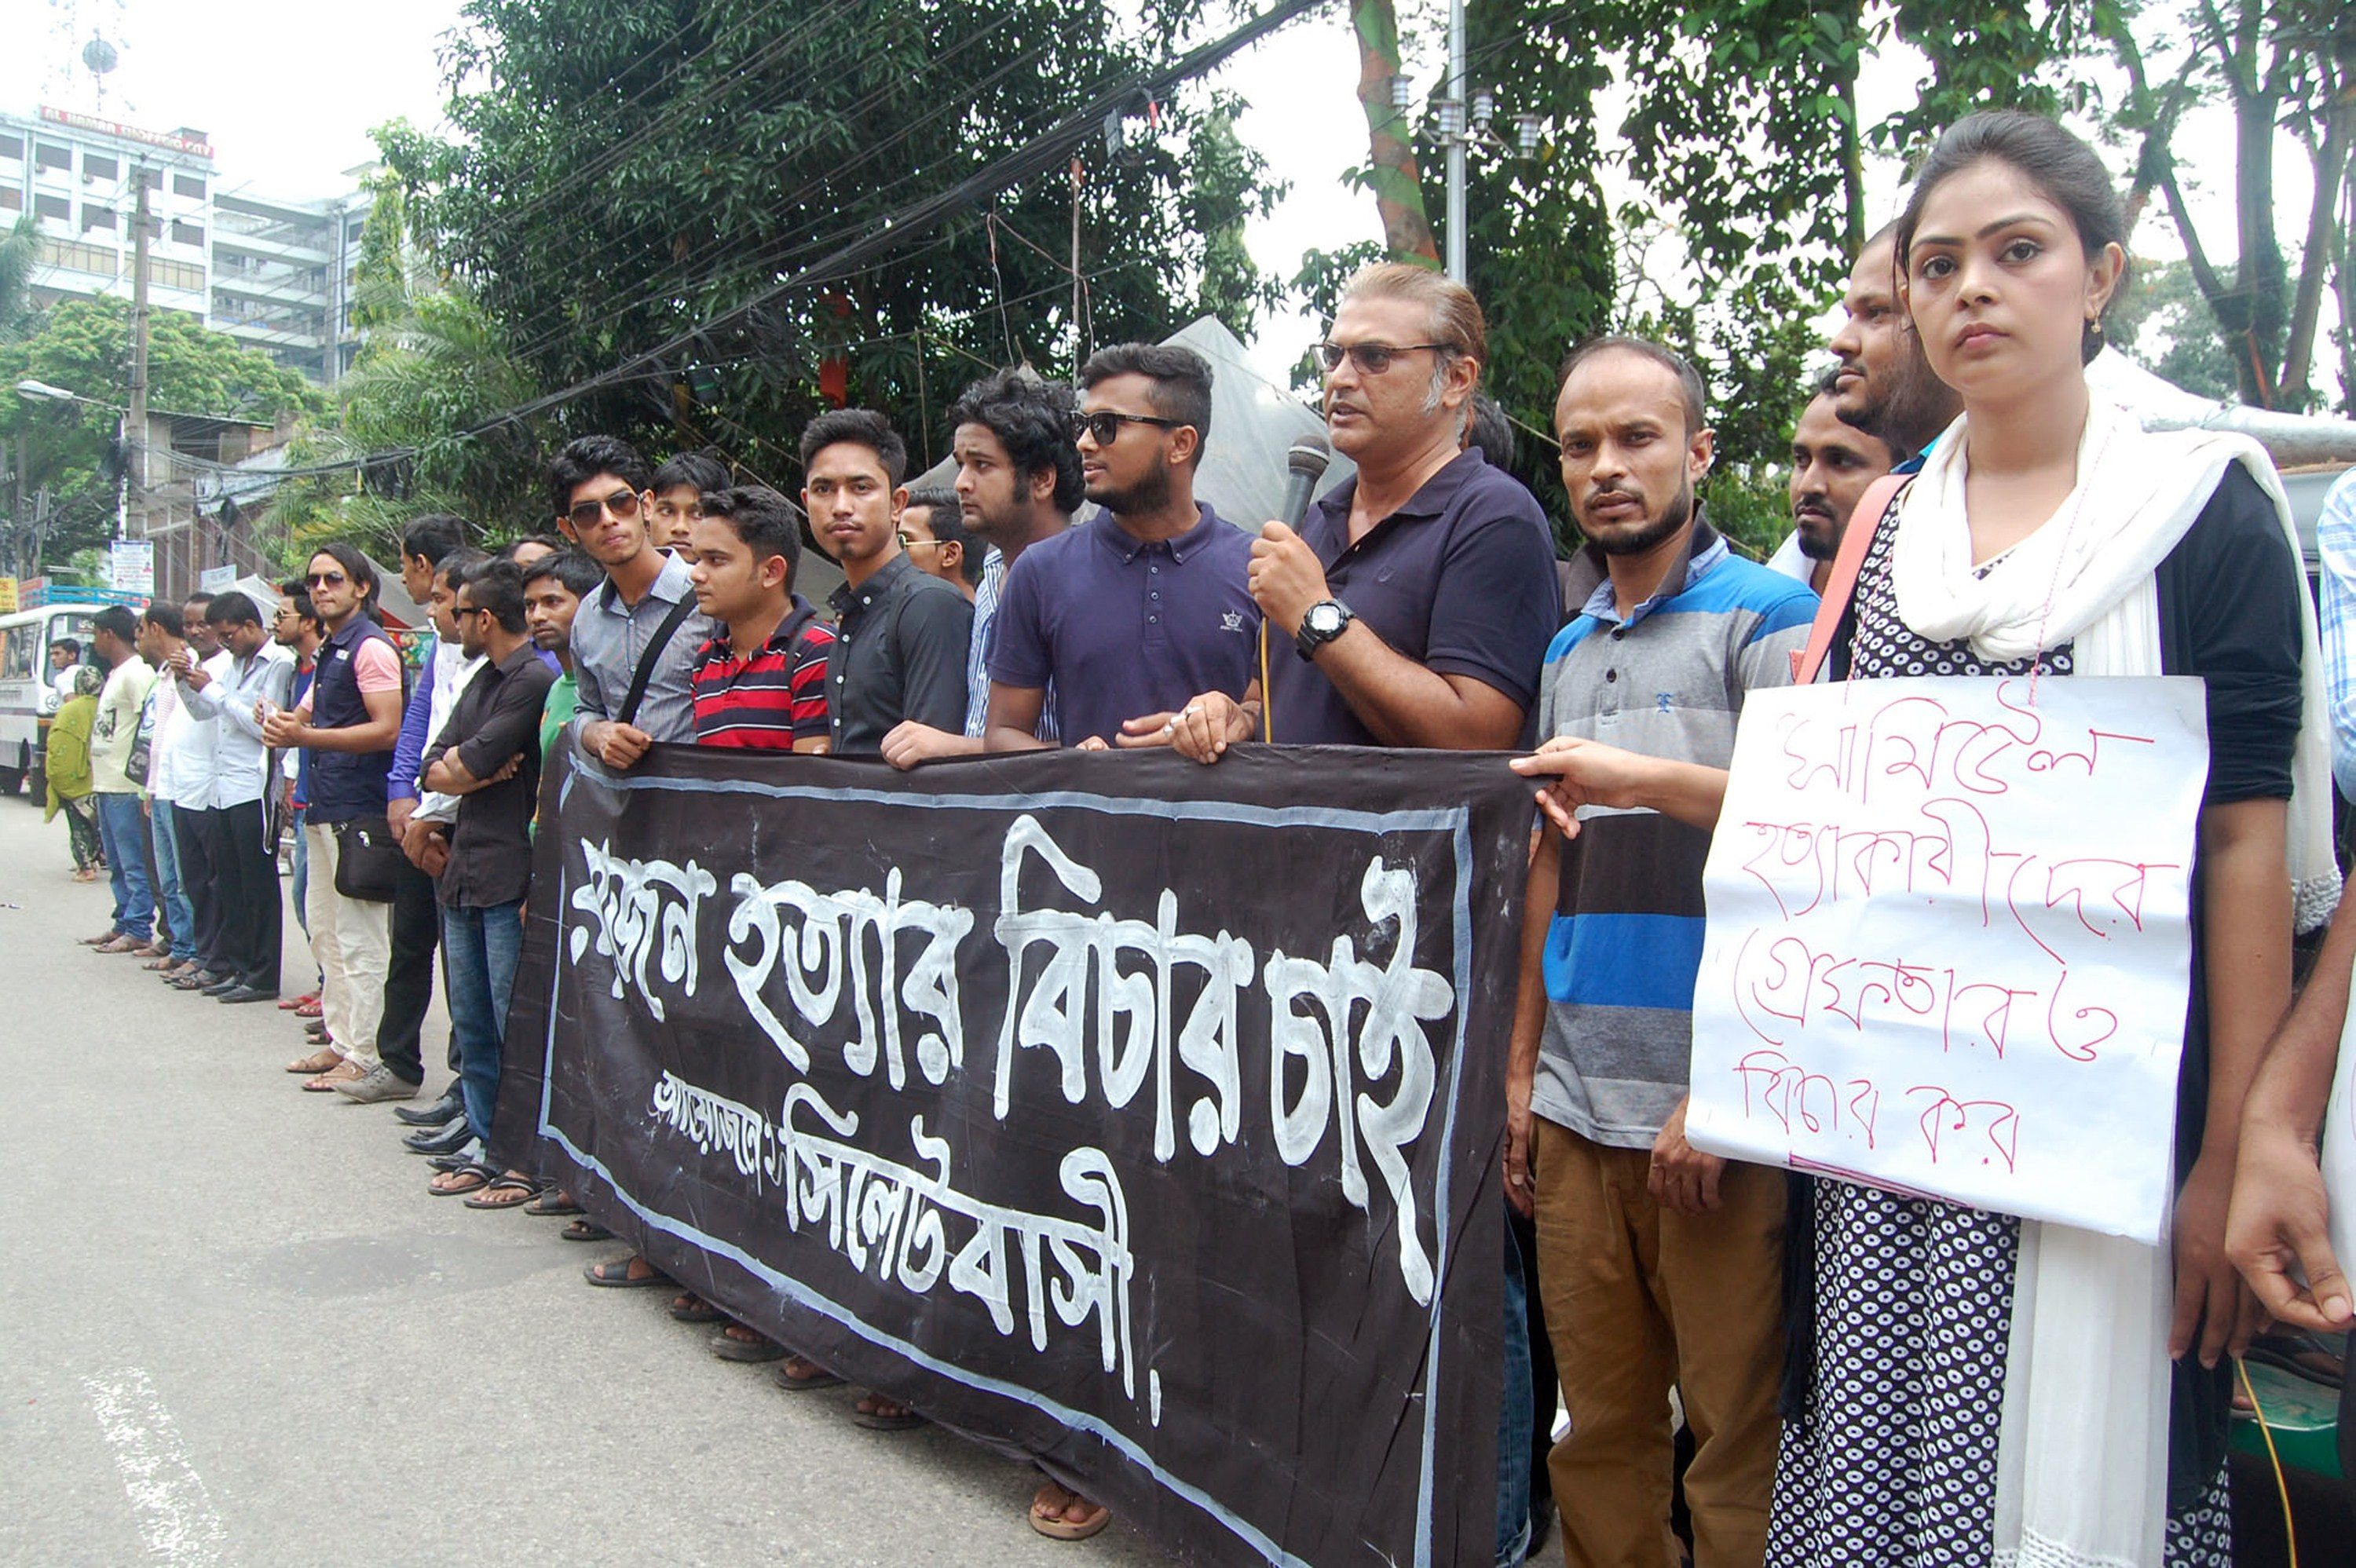 Bangladeshis protest against the beating death of a 13-year-old boy in Sylhet, Bangladesh, on July 13, 2015